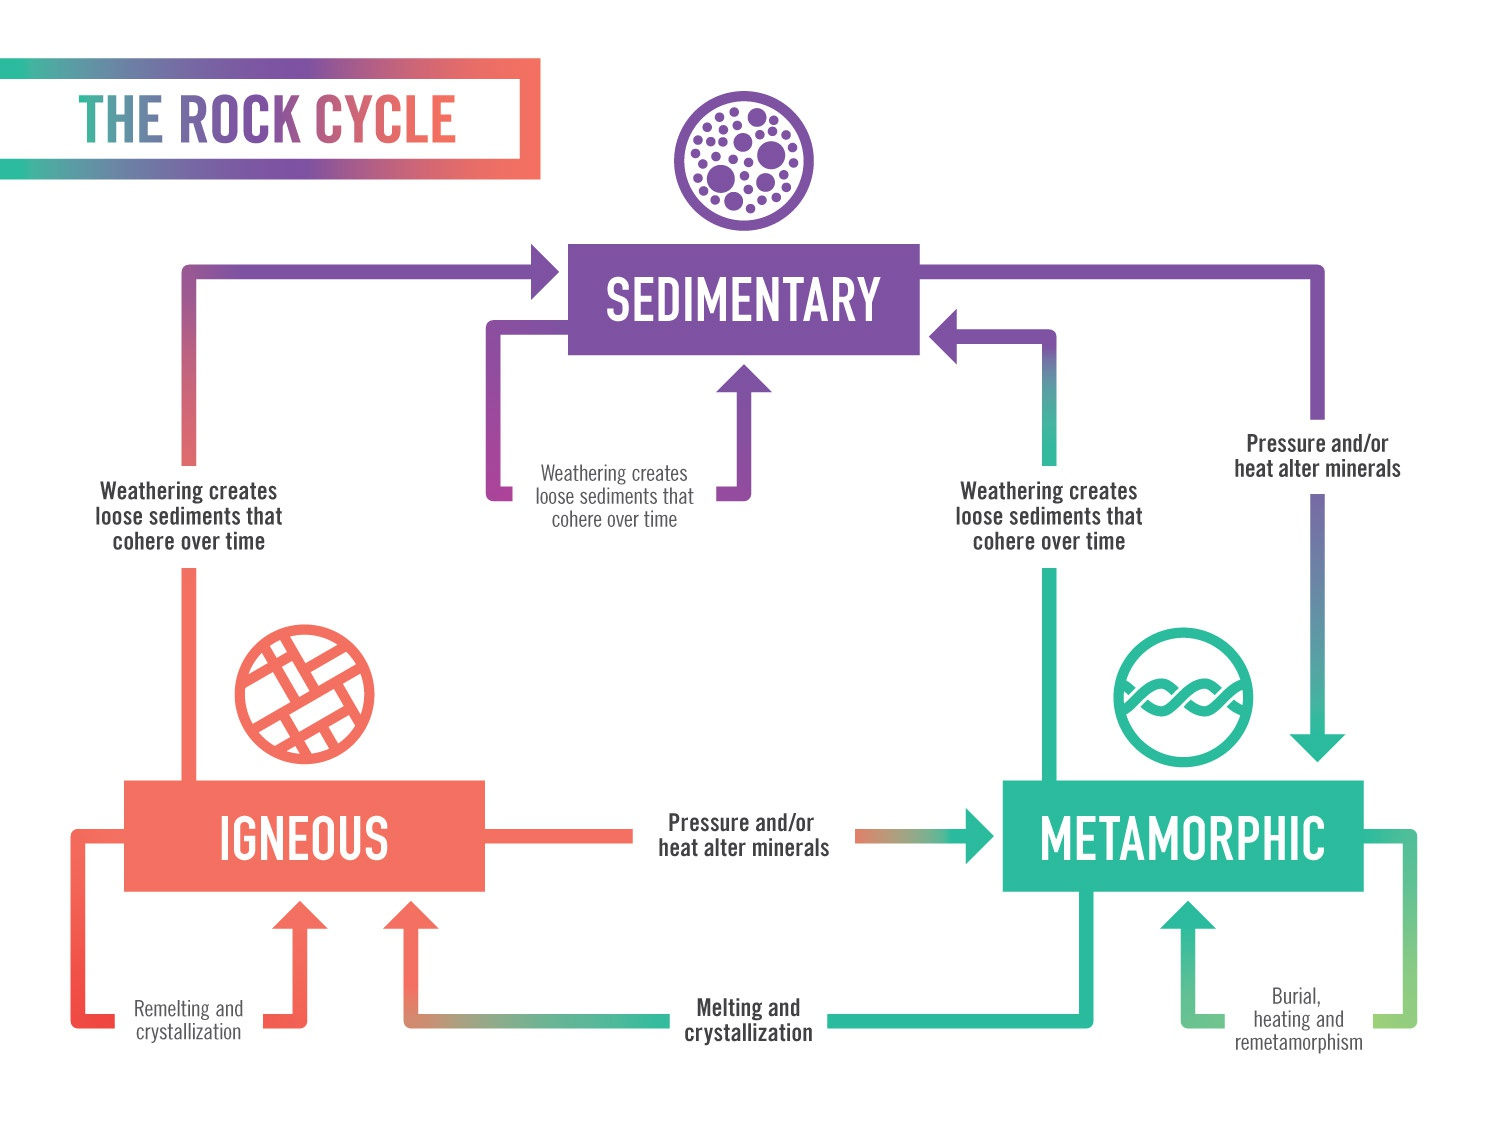 The Rock Cycle Diagram By Chris Gajus On Dribbble